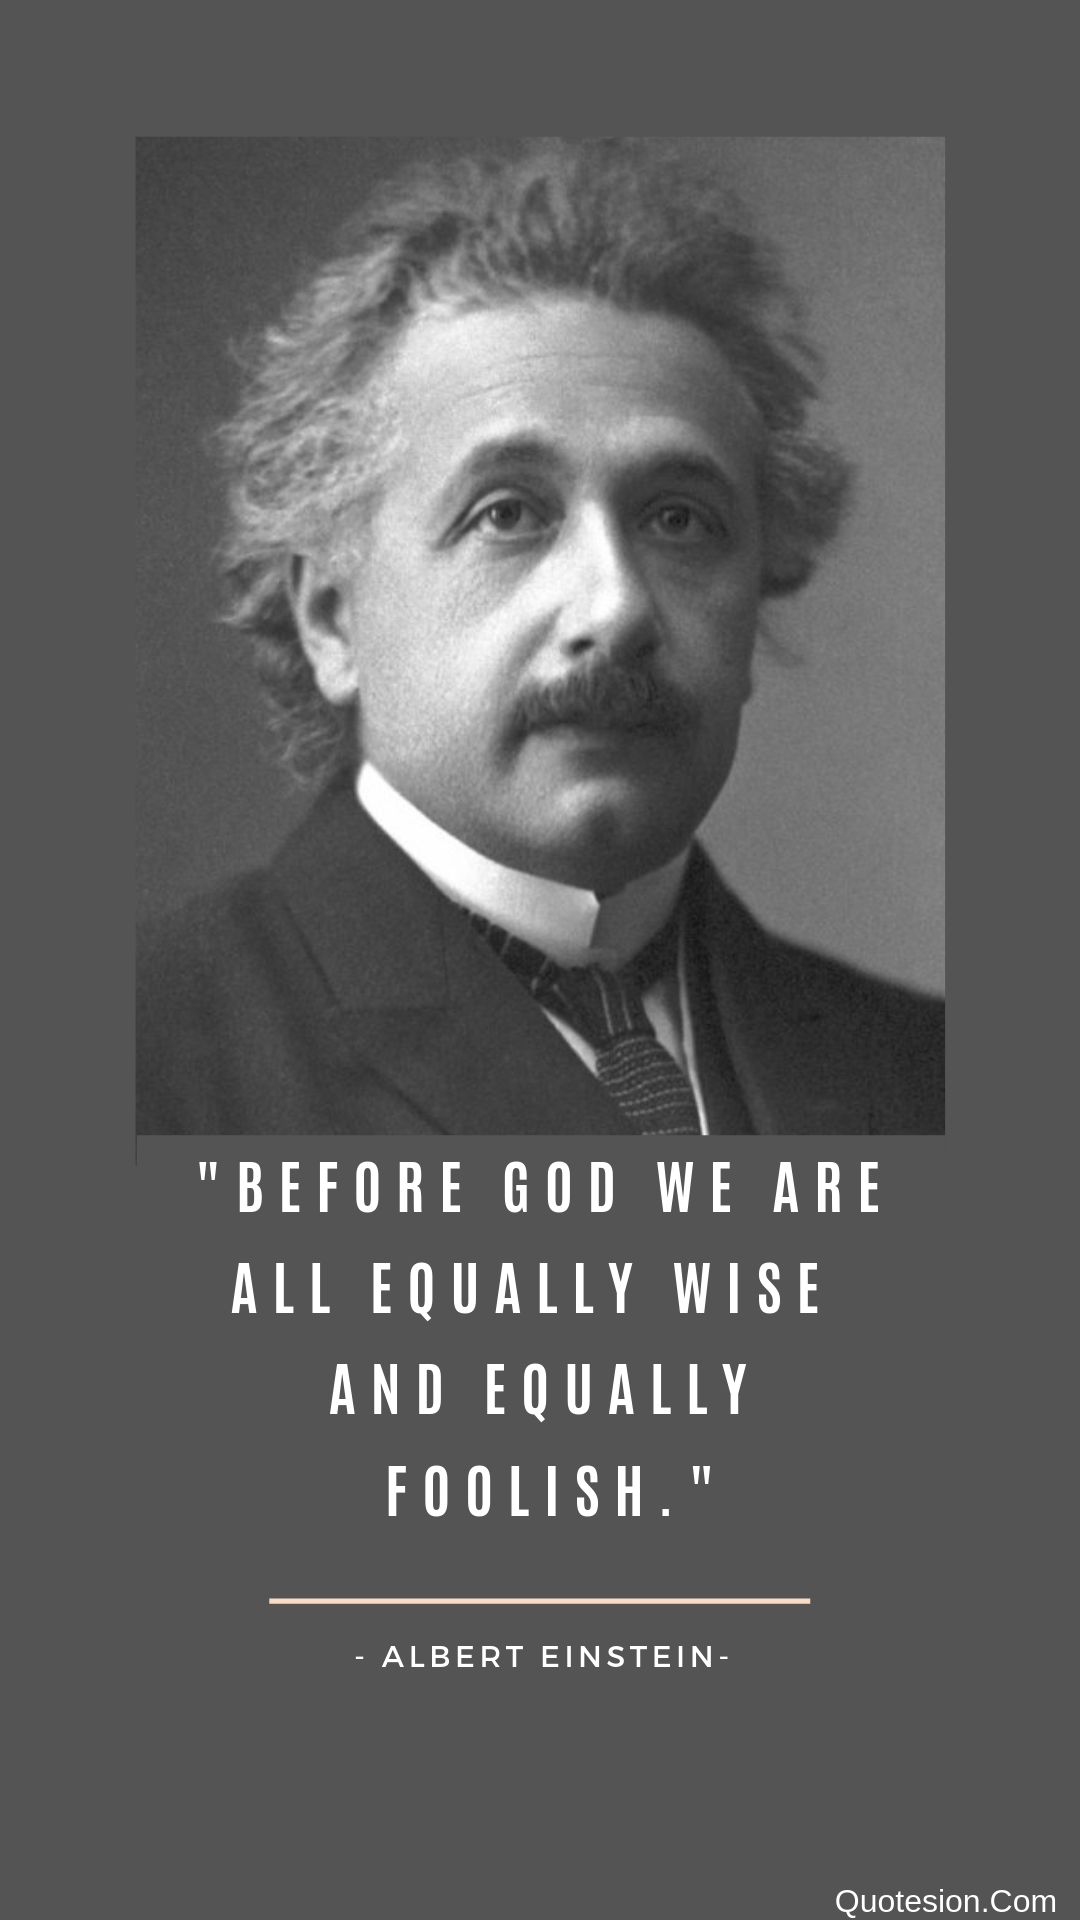 """BEFORE GBI] WE ARE All EQUALLY WISE ANDEOUALLY FDDLISH."" - ALBERT EINSTEIN- Quotesion.Com https://inspirational.ly"